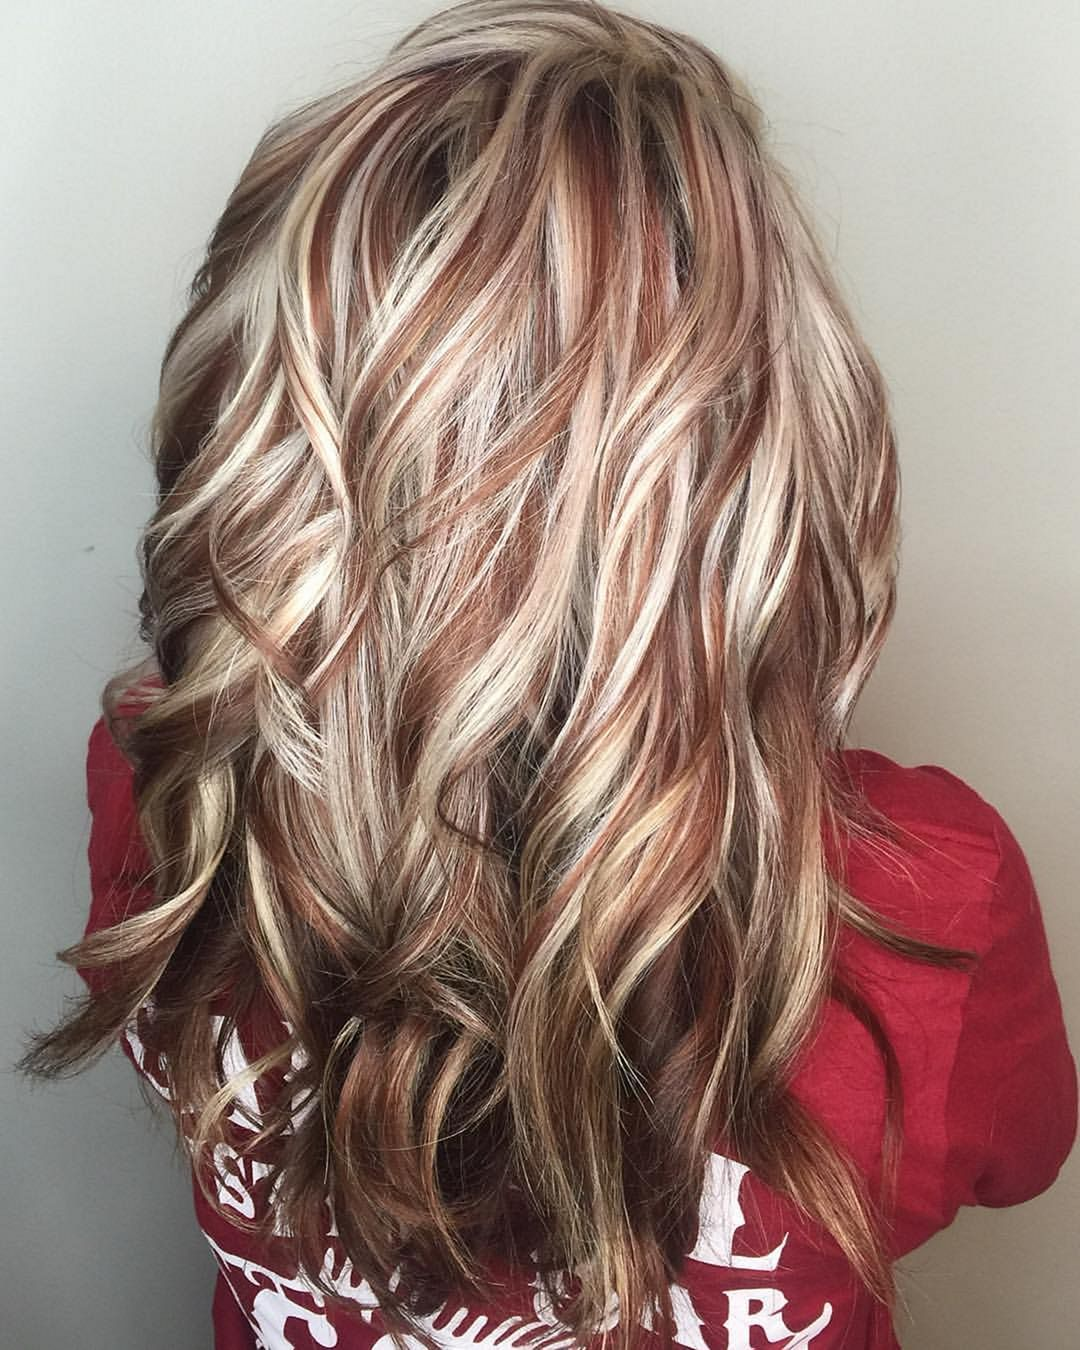 50 Beautiful Fall Hair Color To Look More Pretty 530 Hair Styles Cool Hair Color Hair